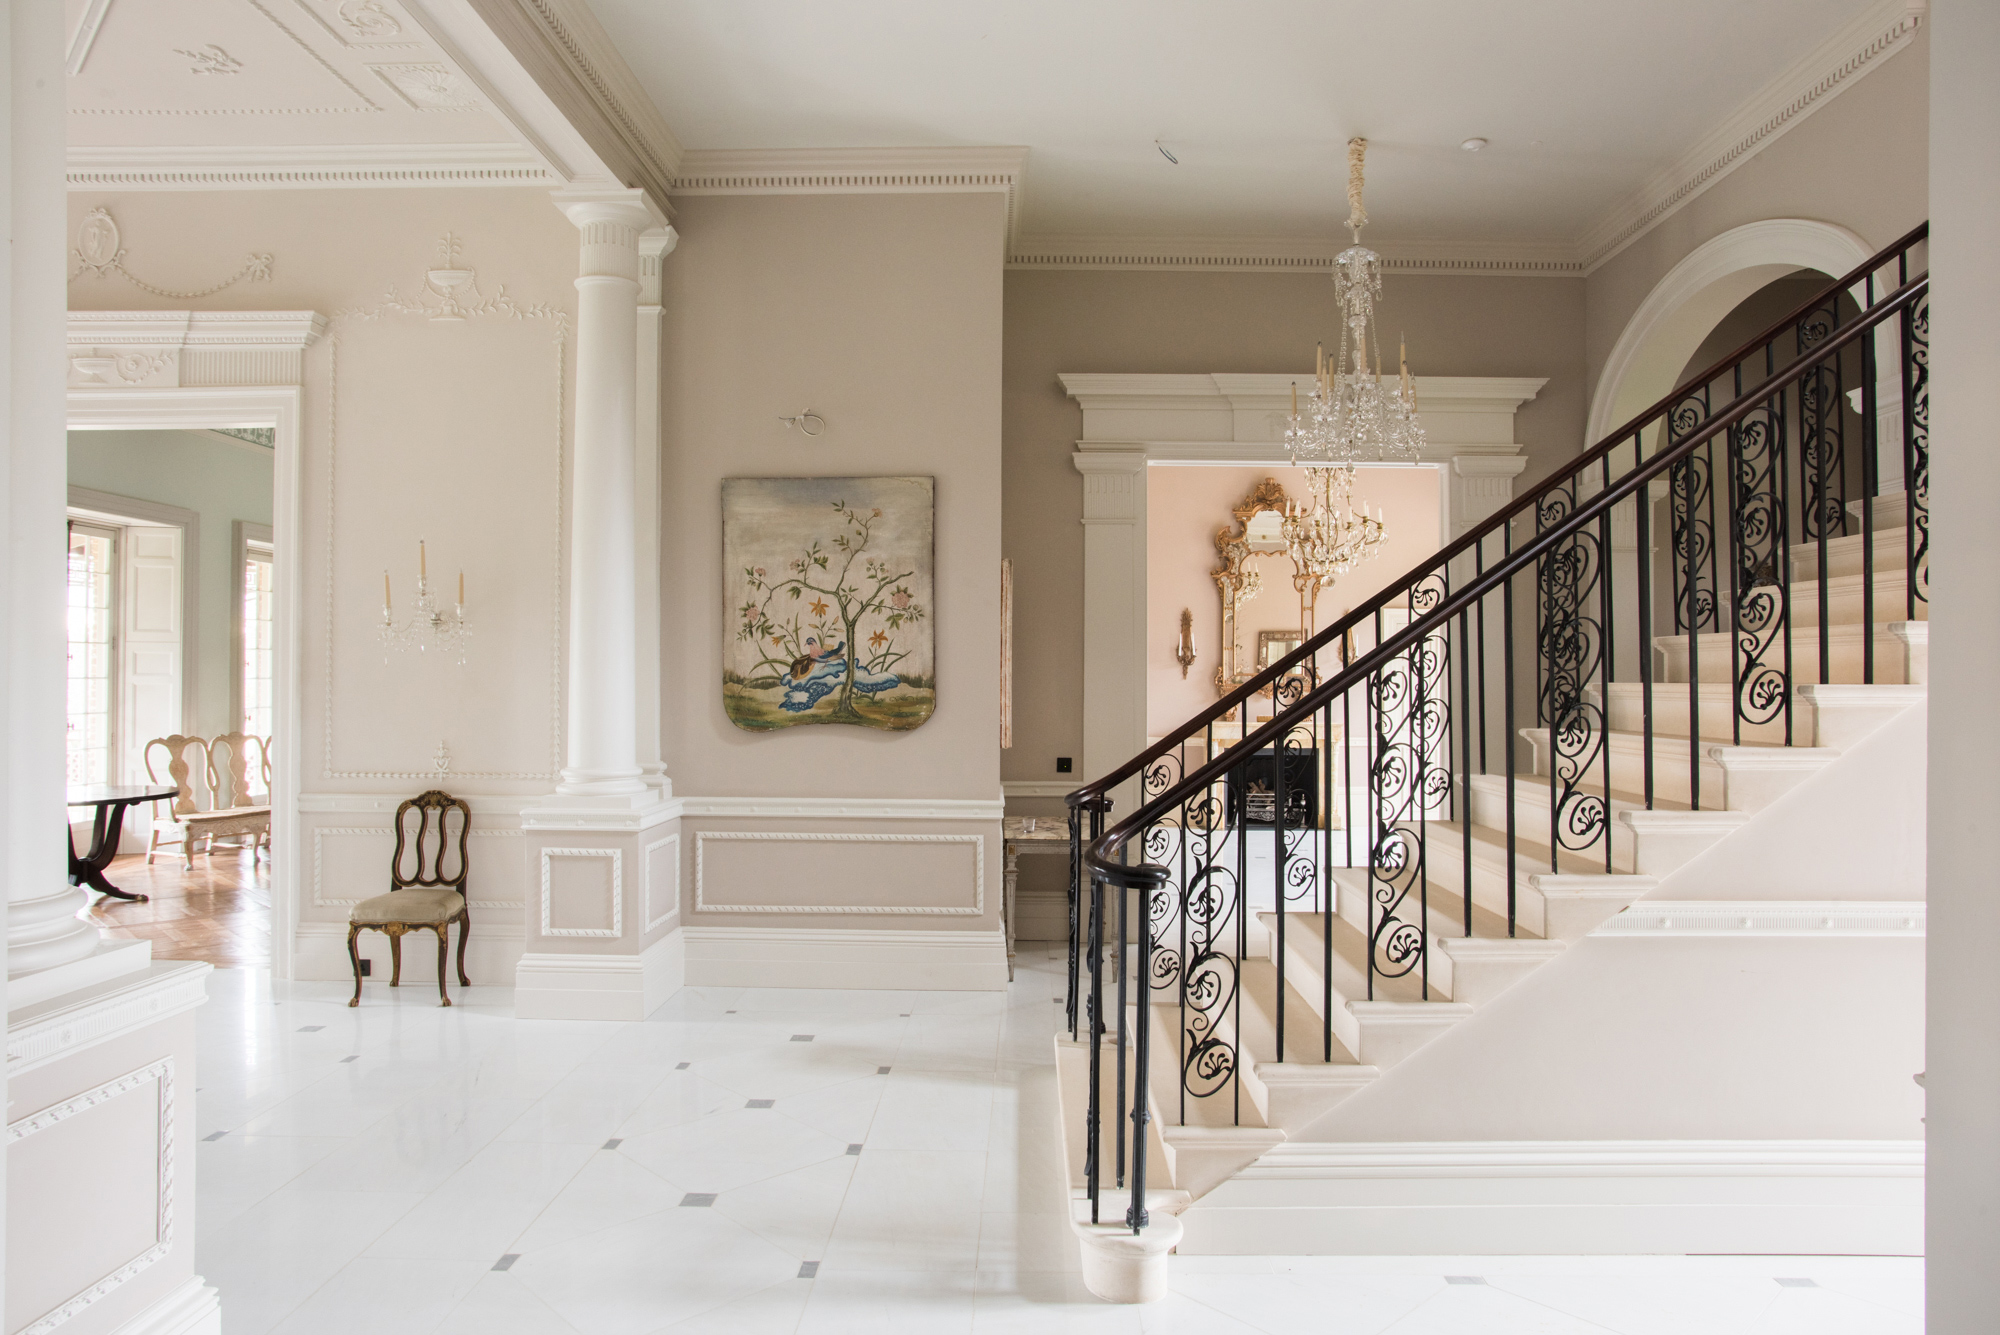 The foyer and staircase of the Templeton house